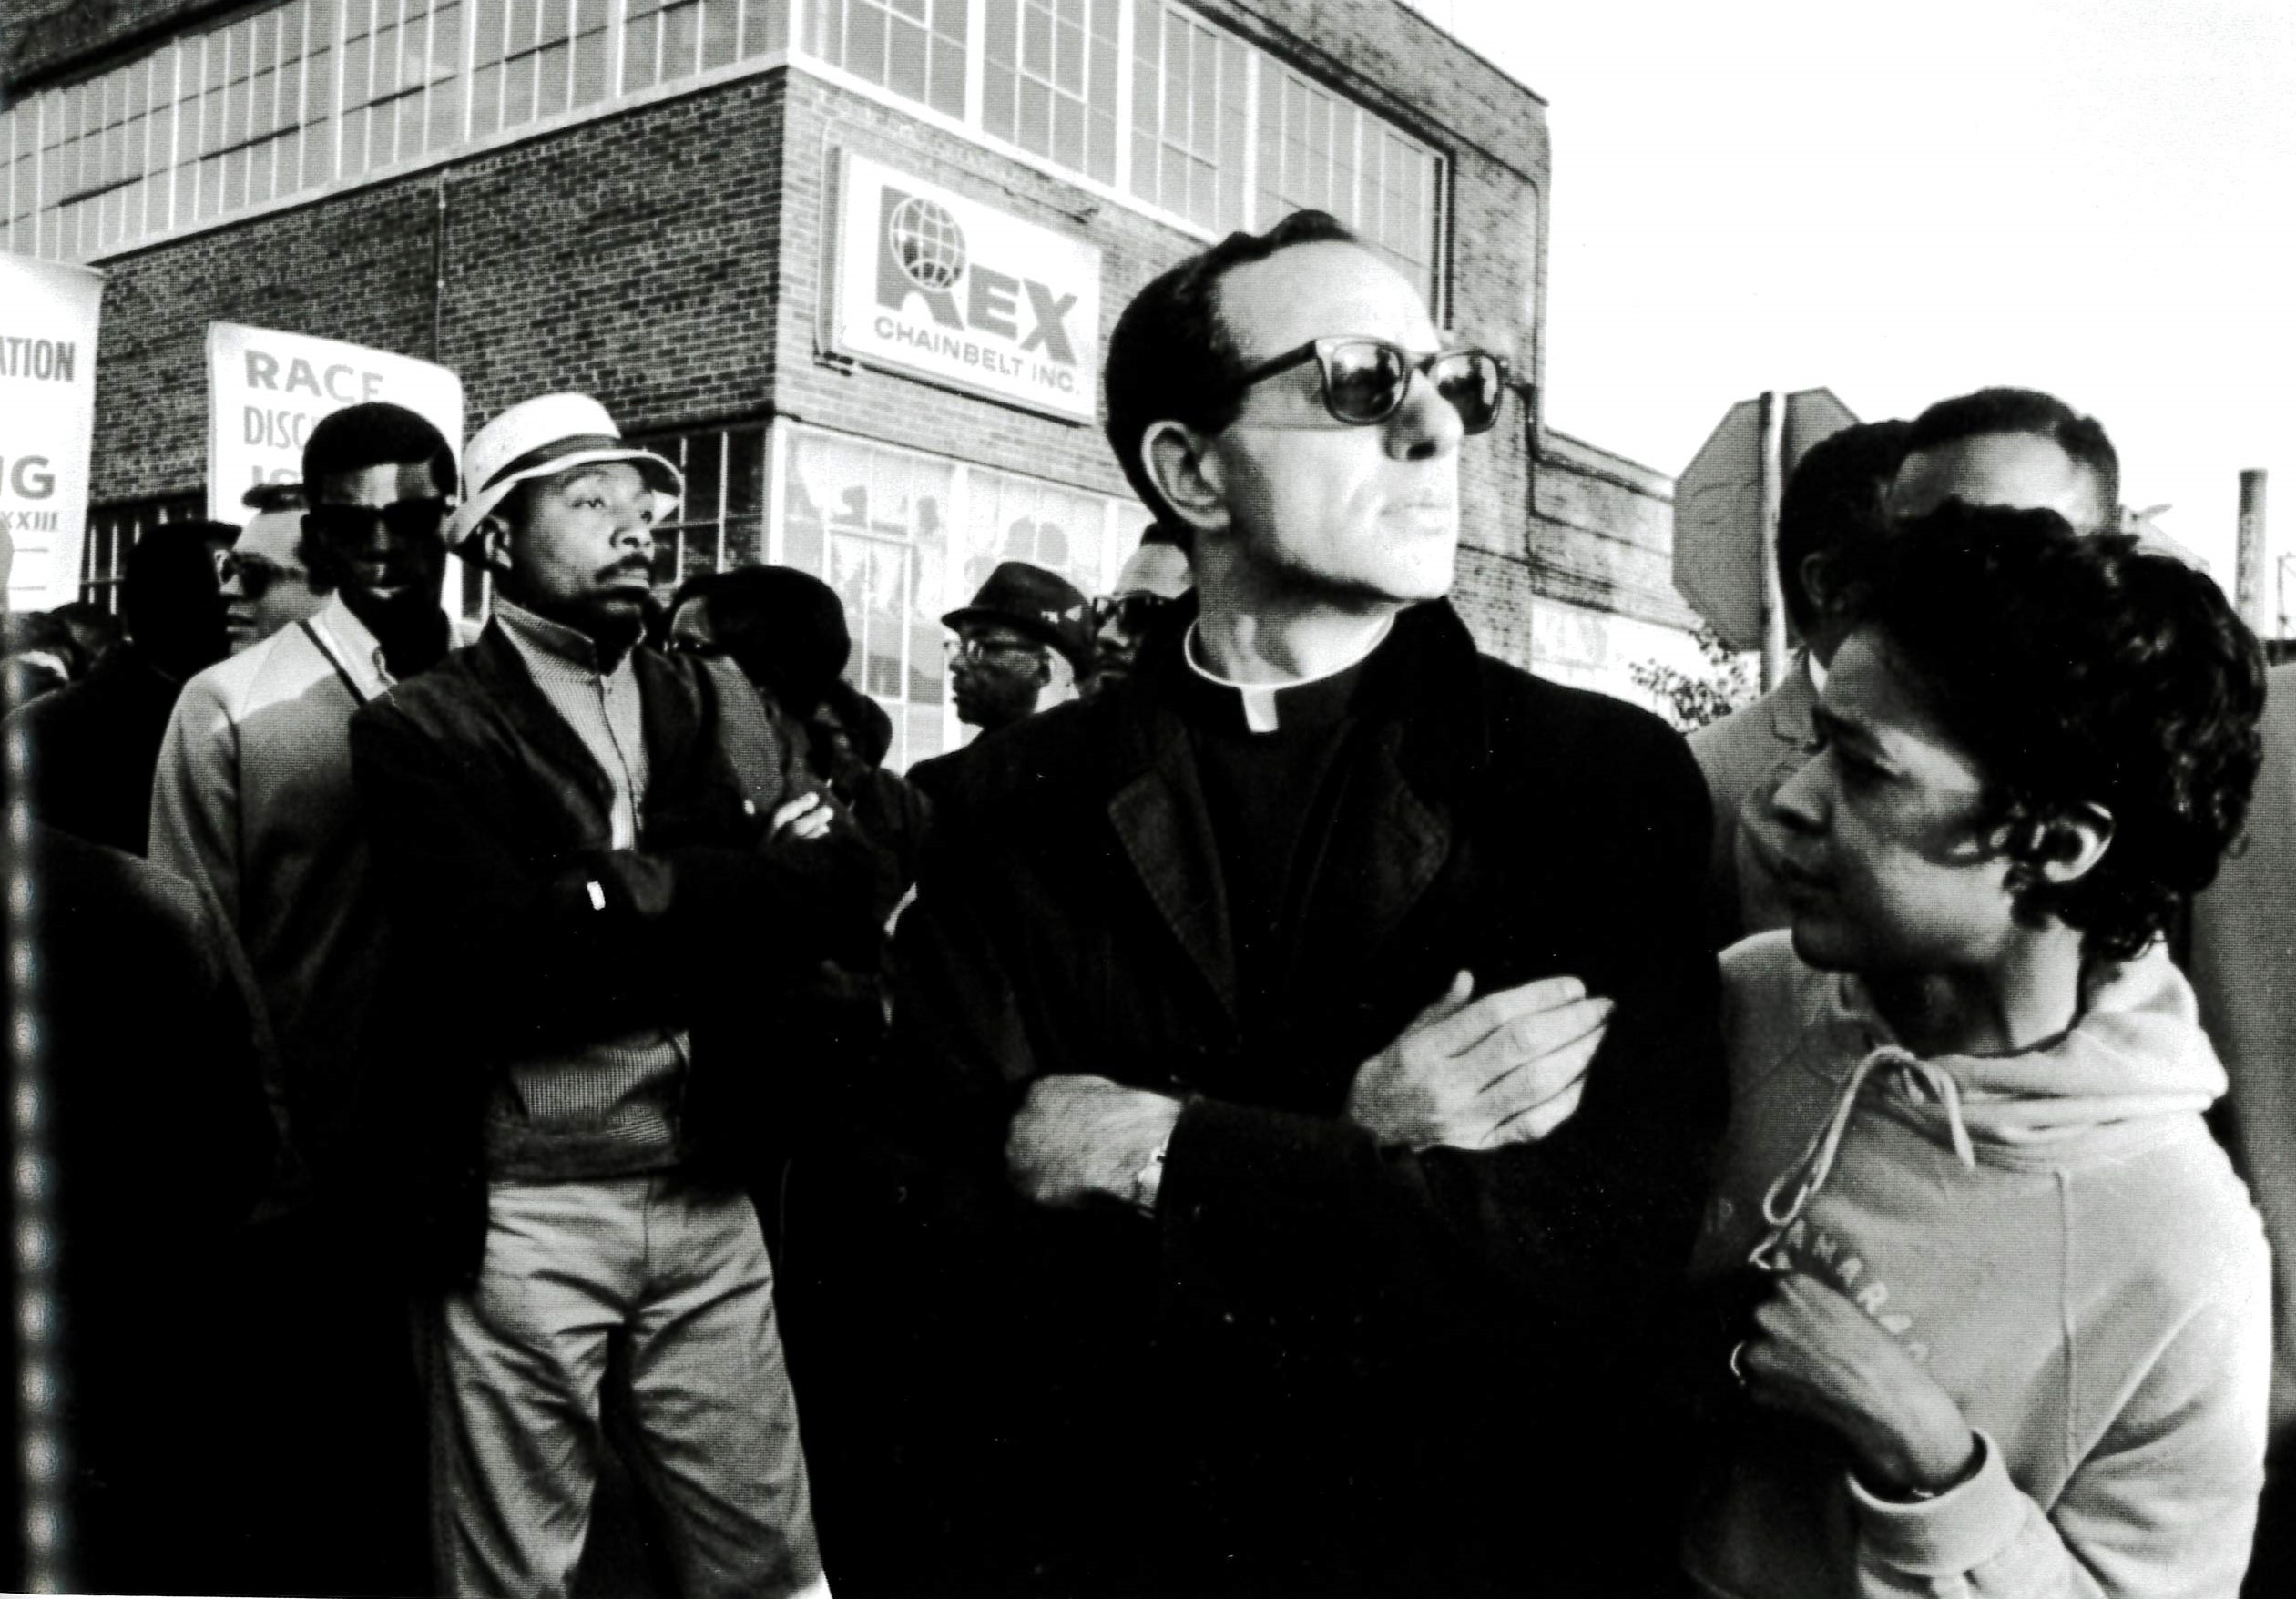 Photo from North of Dixie: Comedian Dick Gregory (in white hat), Milwaukee NAACP Youth Council adviser Father James Groppi (center), and Alderperson Vel Phillips (right) at a march for open housing in Milwaukee, September 1967